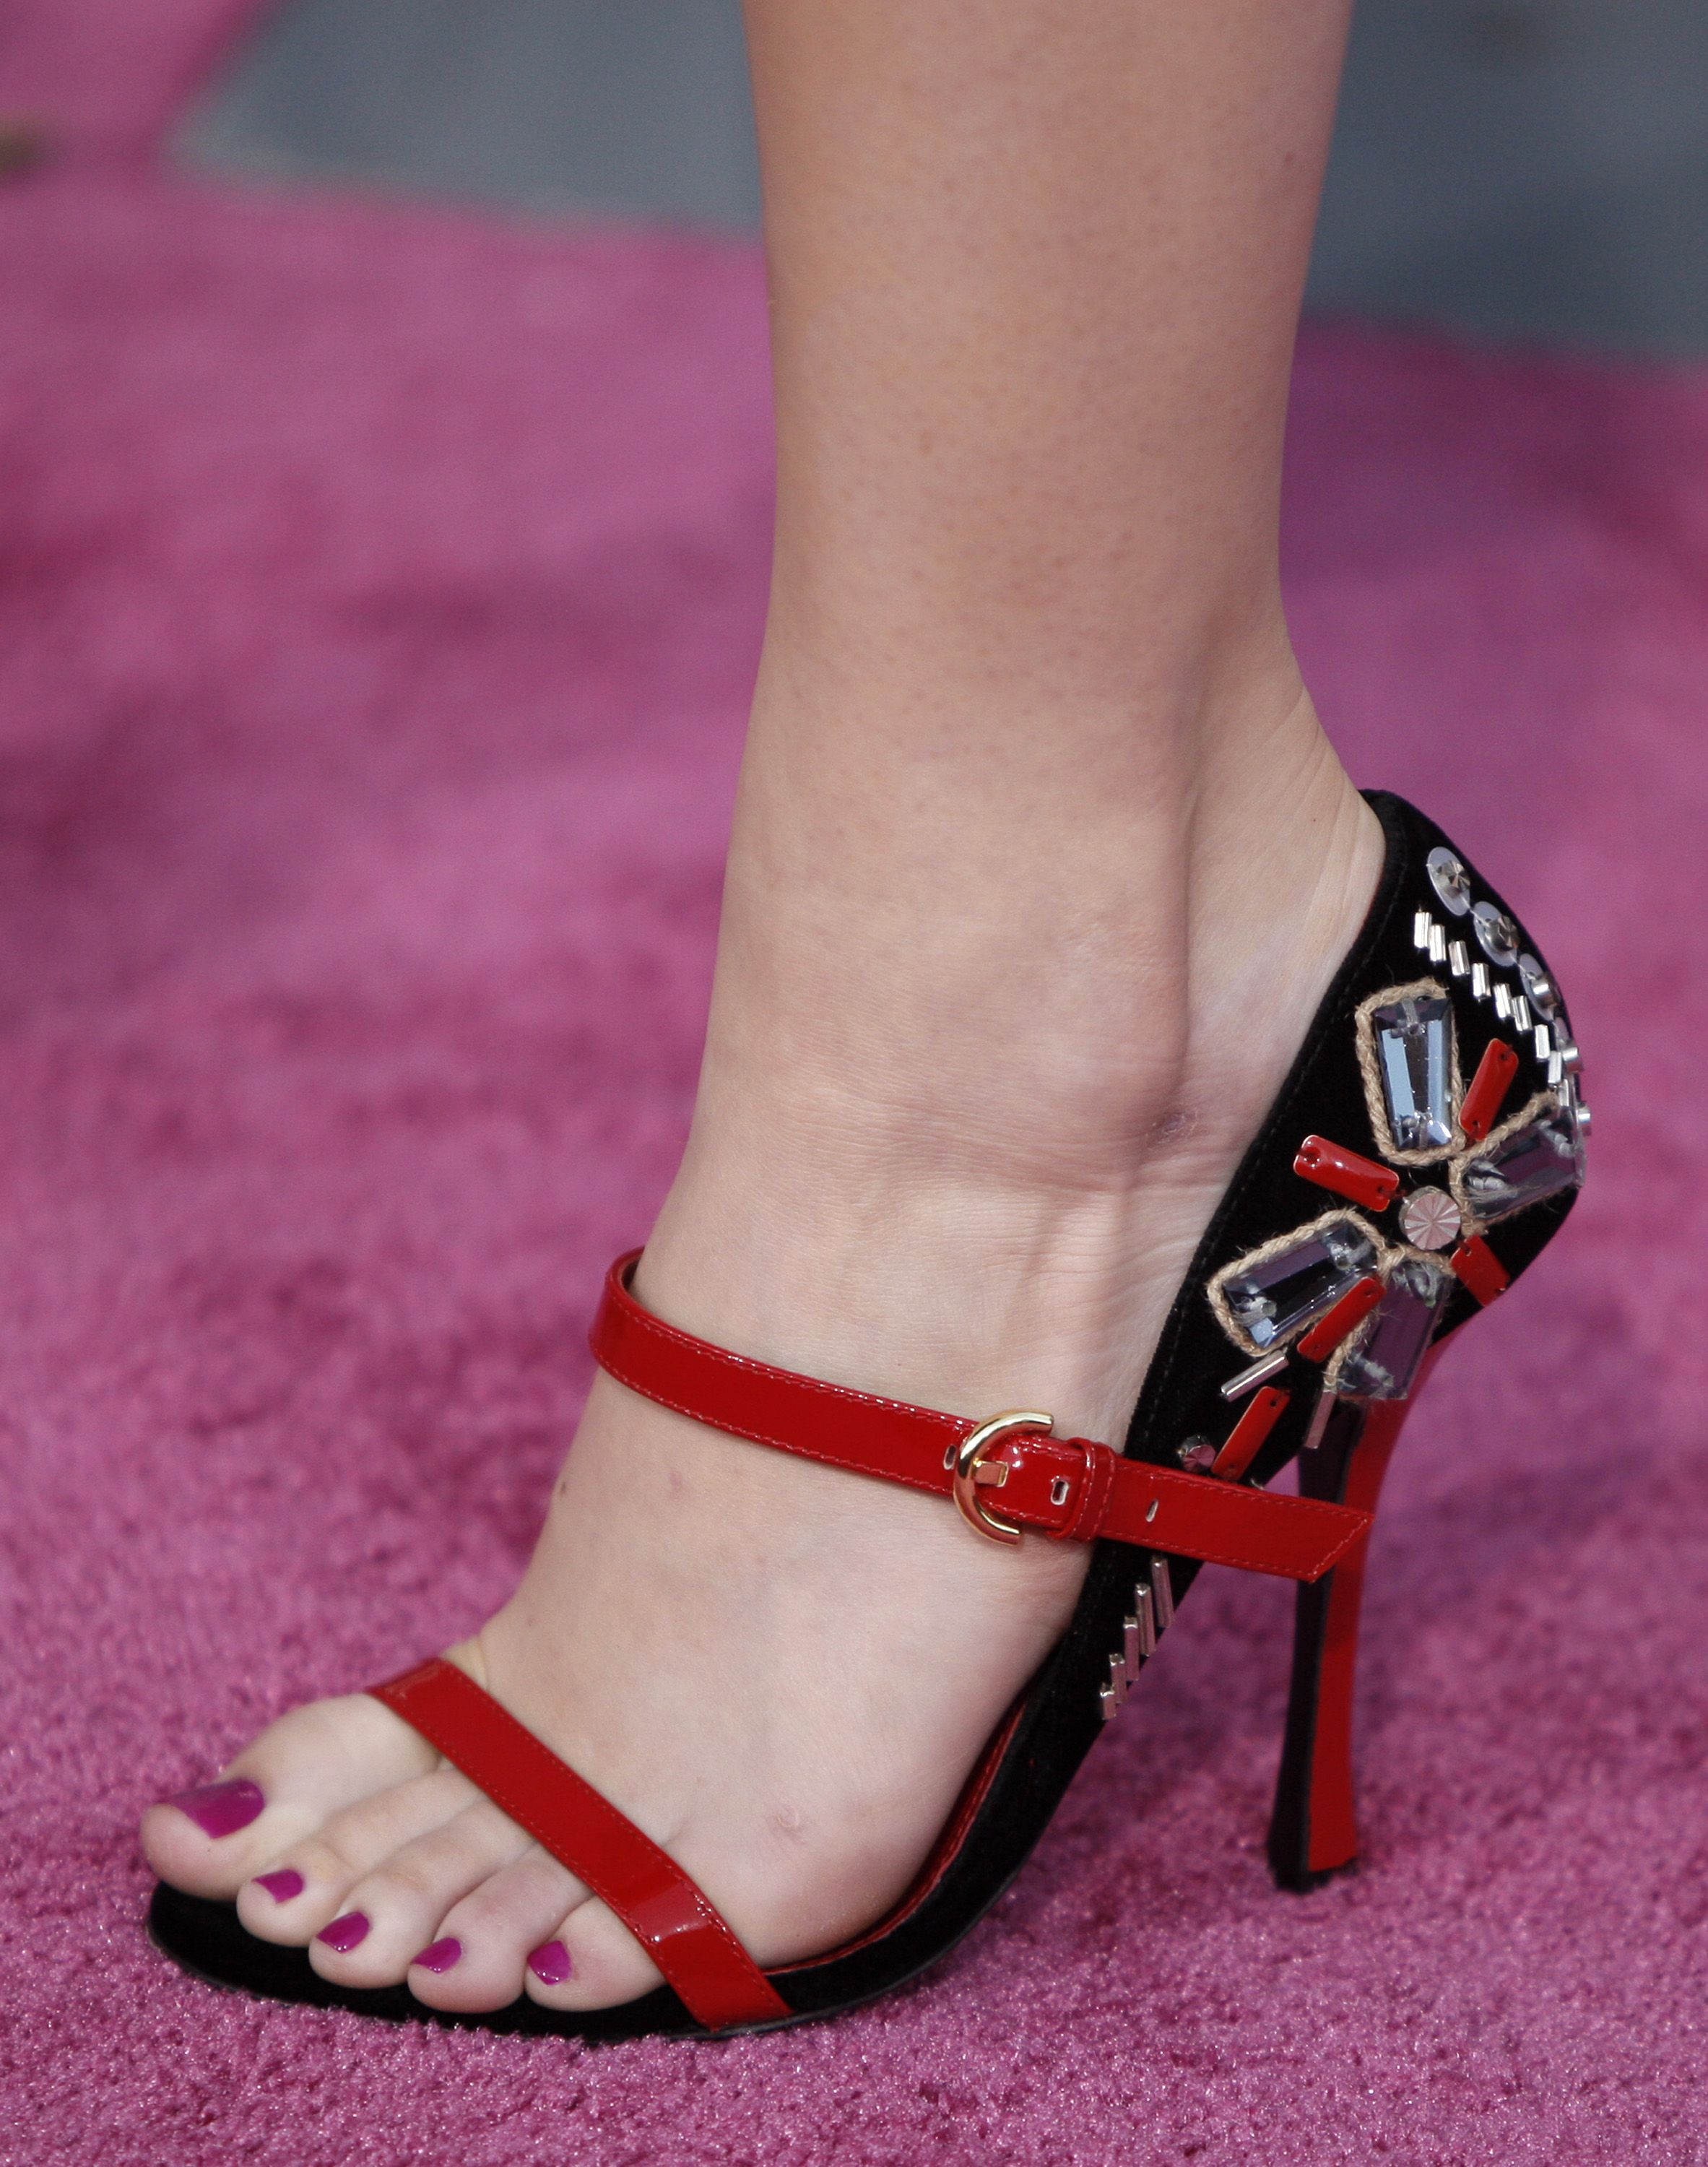 0a1ead80531a4 Emma-Stone-Feet! These shoes are ah-mazing!